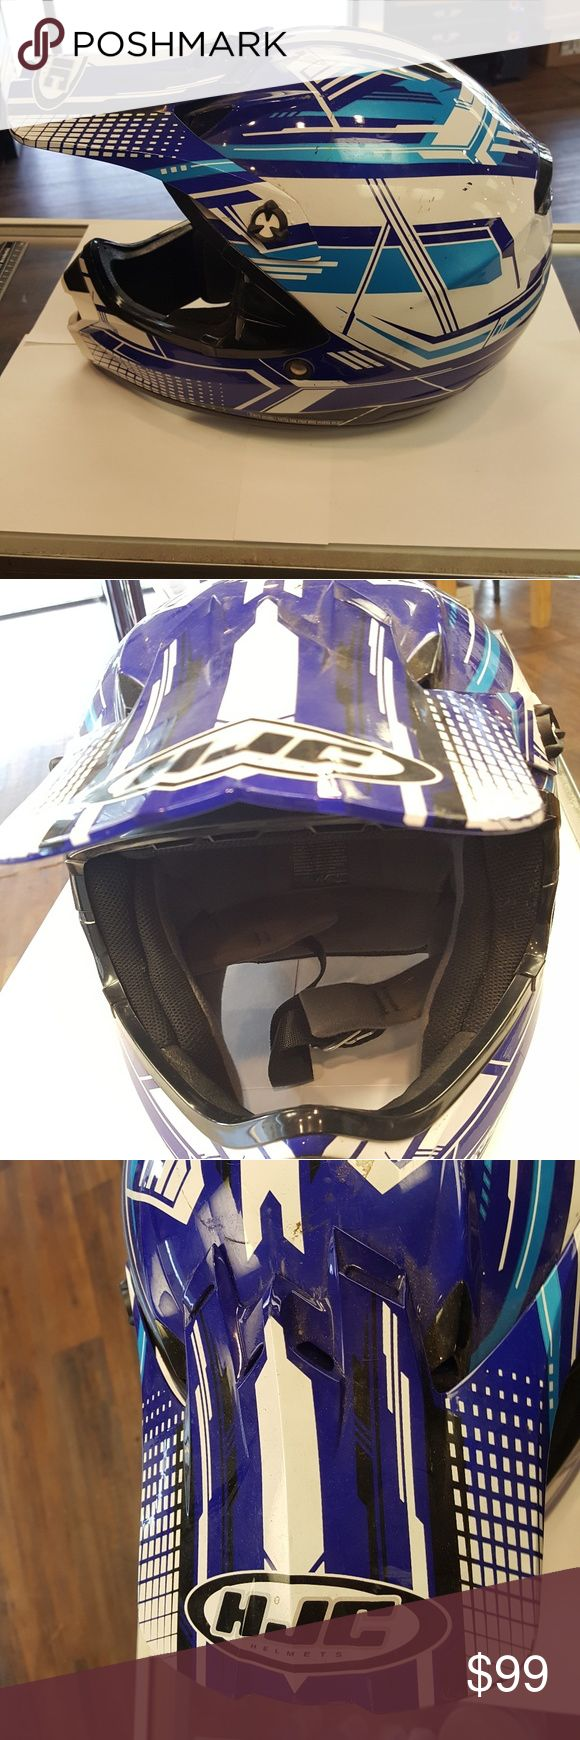 HJC helmet HJC helmet HJC Accessories Sunglasses